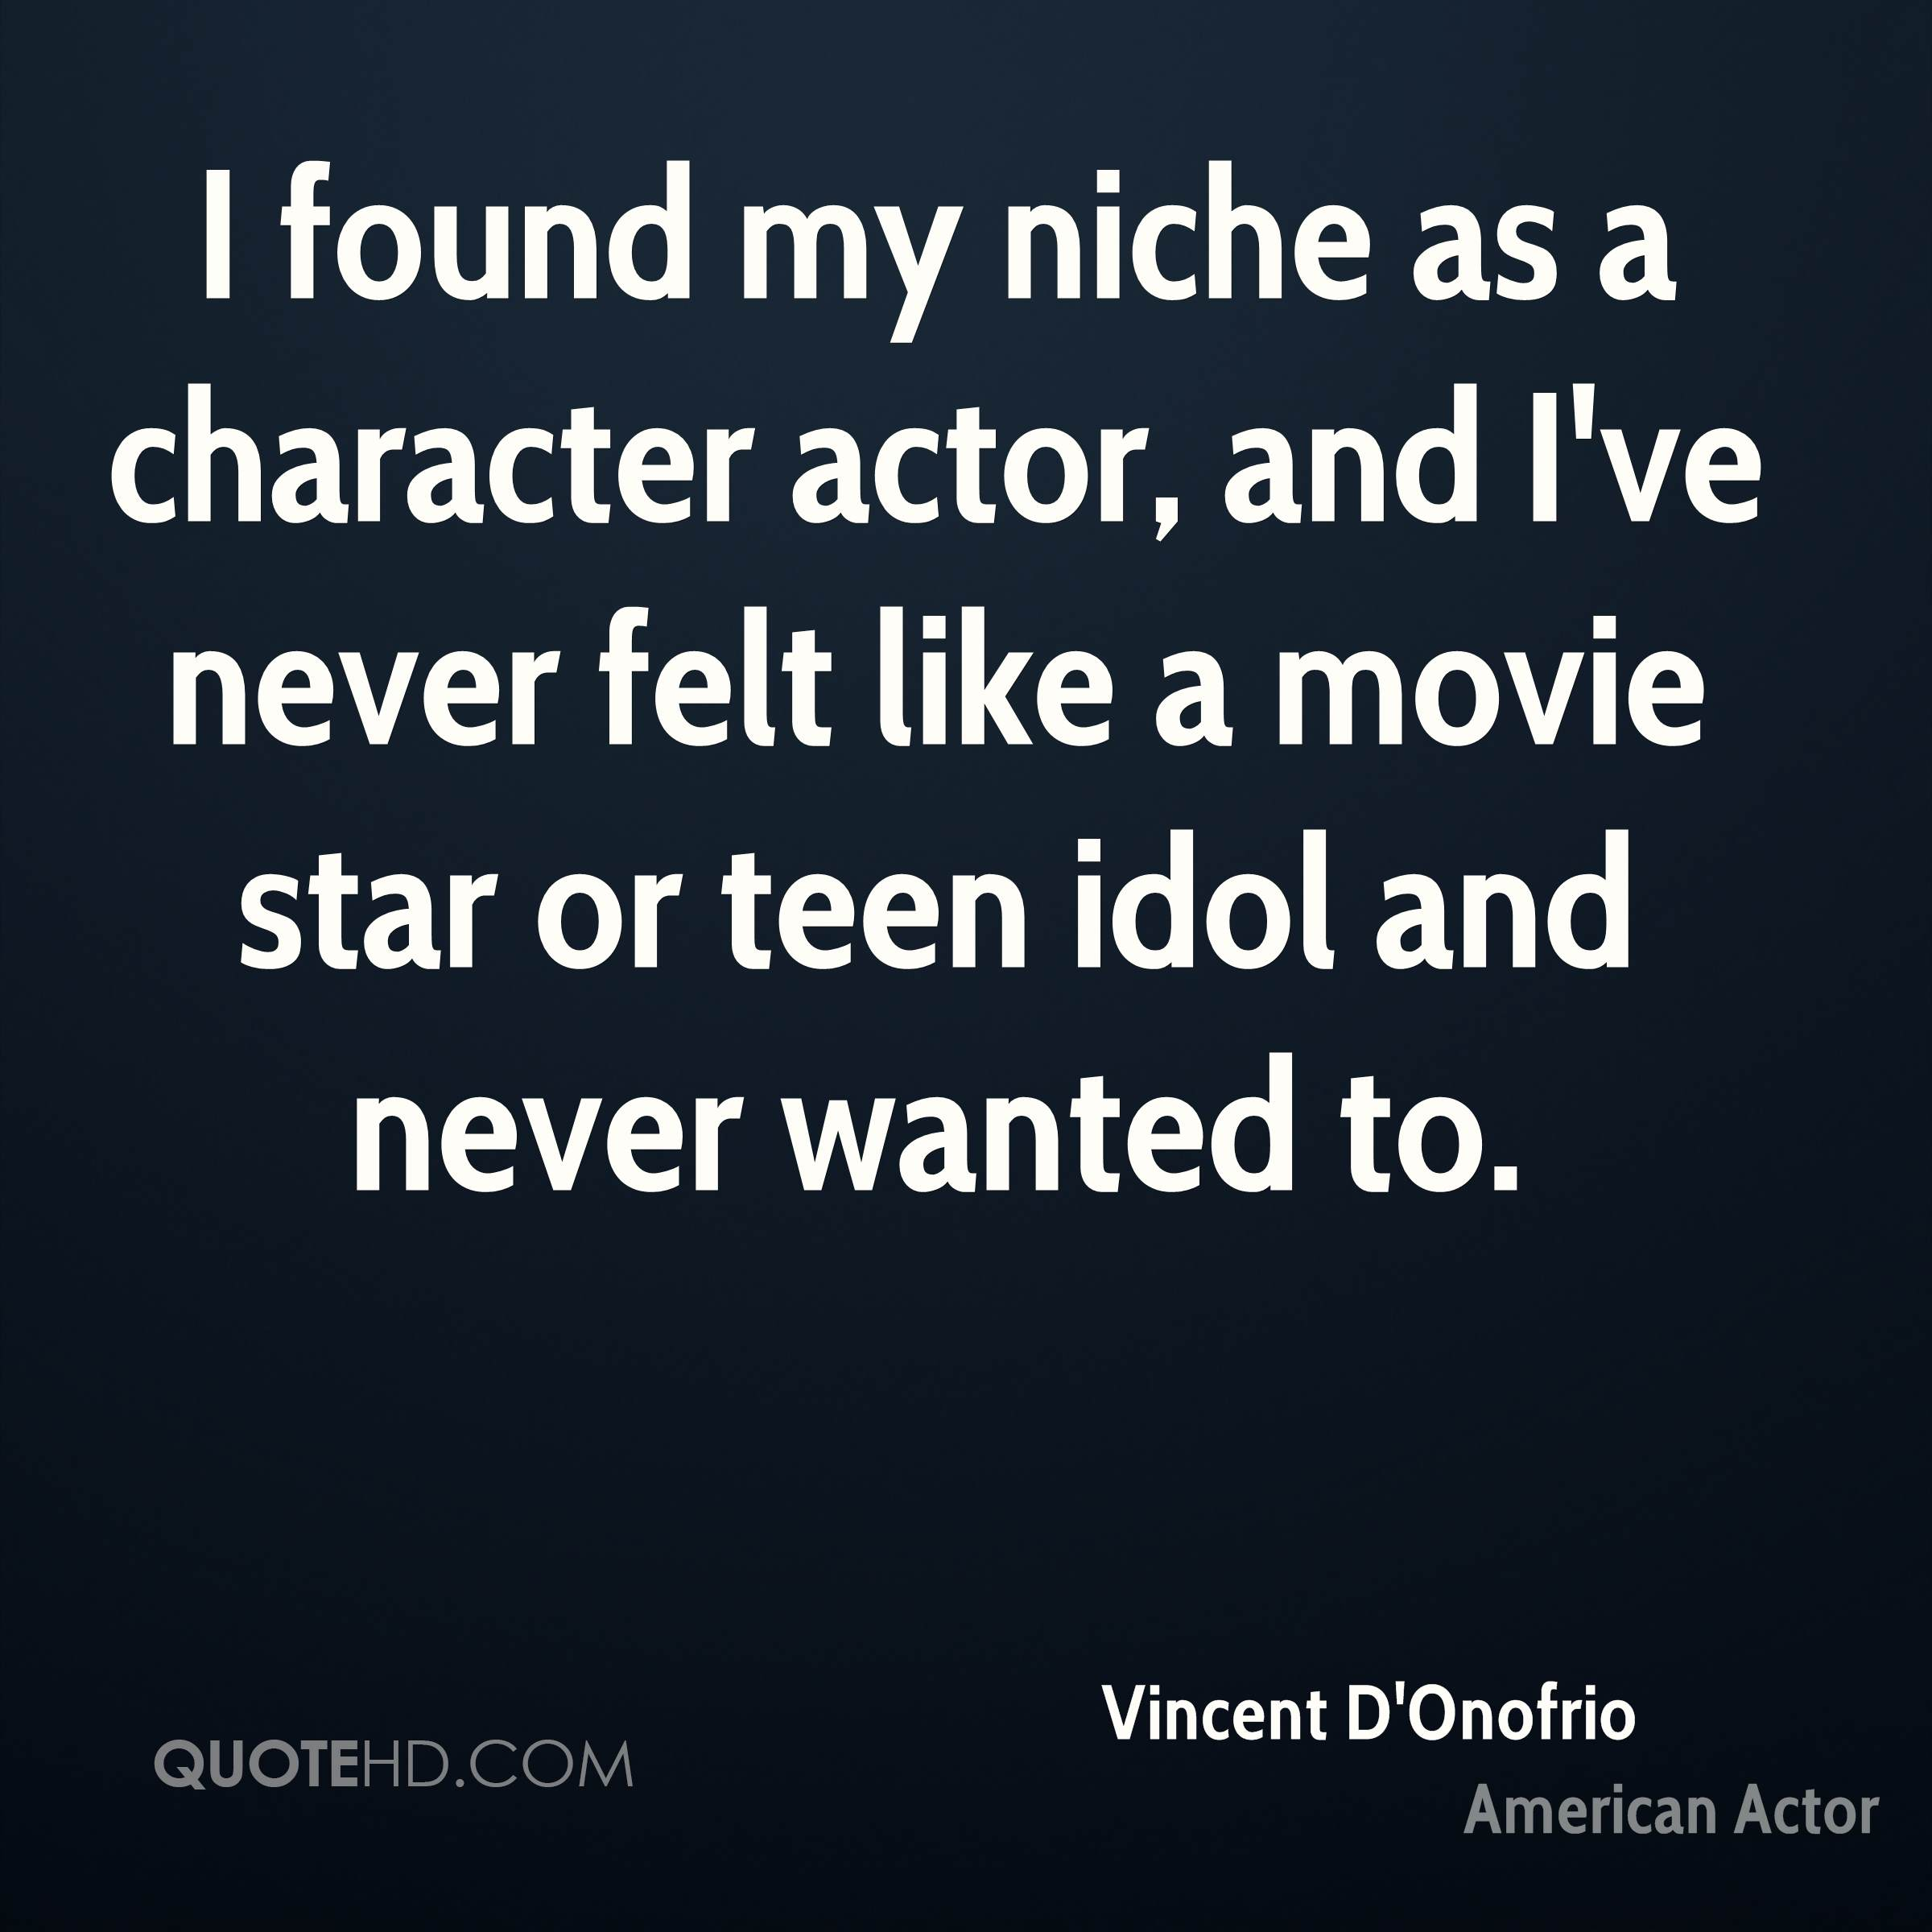 I found my niche as a character actor, and I've never felt like a movie star or teen idol and never wanted to.